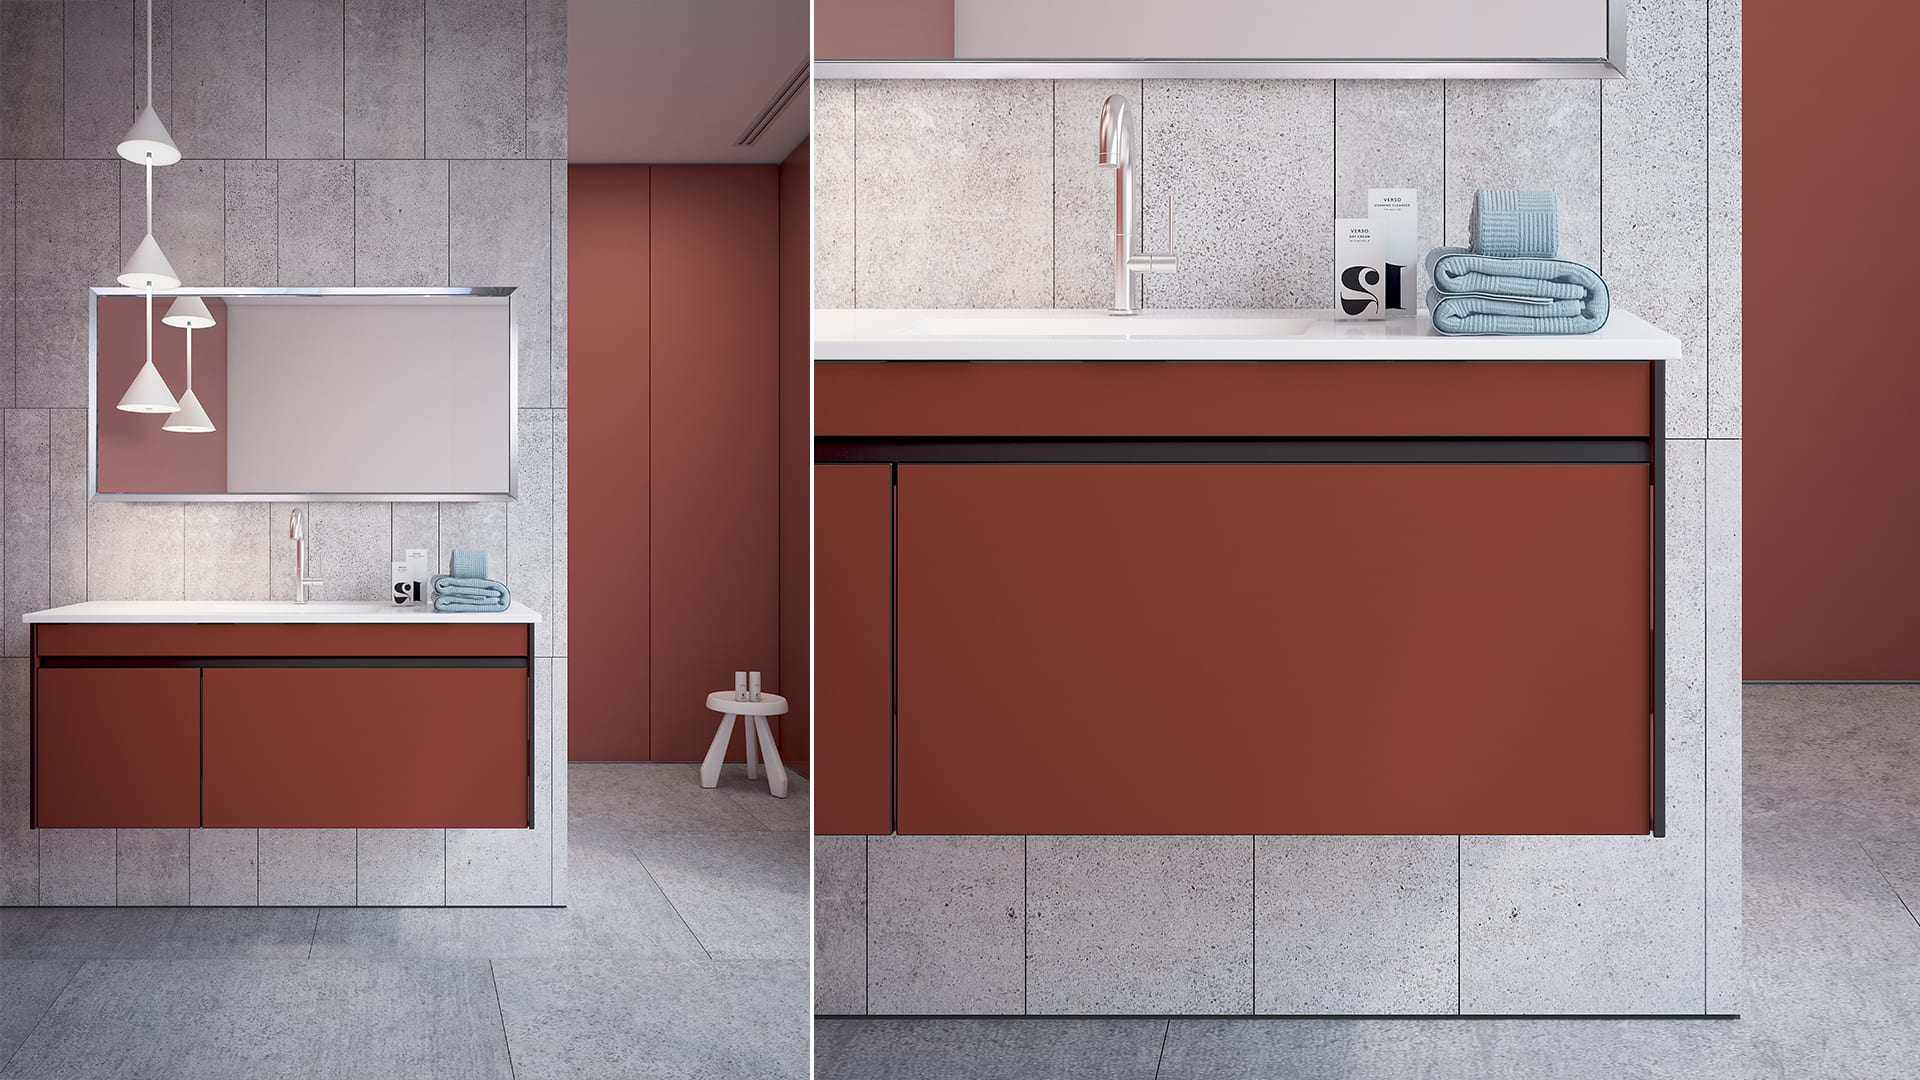 Maayan-Golan_Architectural-Visualization_product-visualization_ Bathroom-cabinets_ company-Ambin-Systems_04